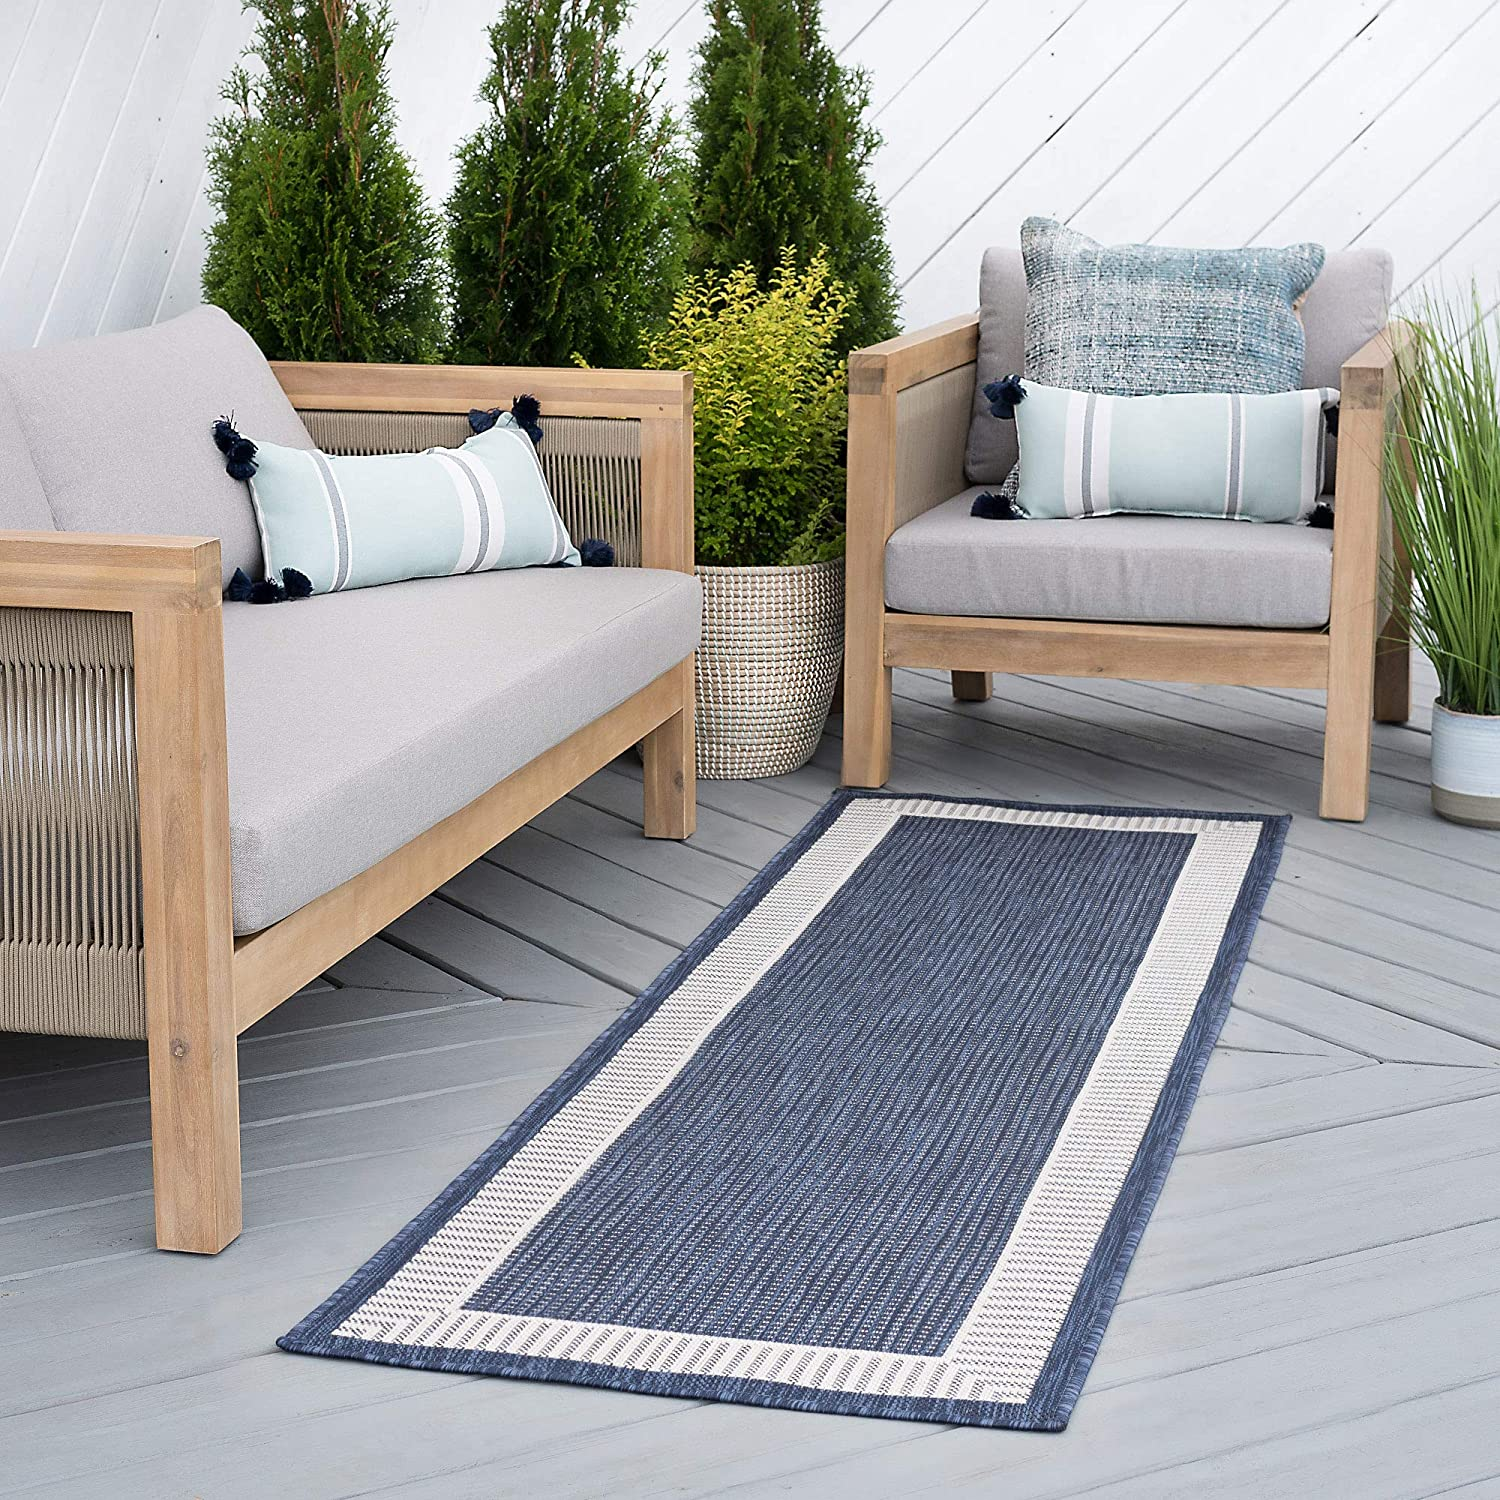 Elgin Navy Outdoor 2x8 Runner Area Rug for Hallway, Walkway, Entryway, or Foyer - Transitional, Striped Border